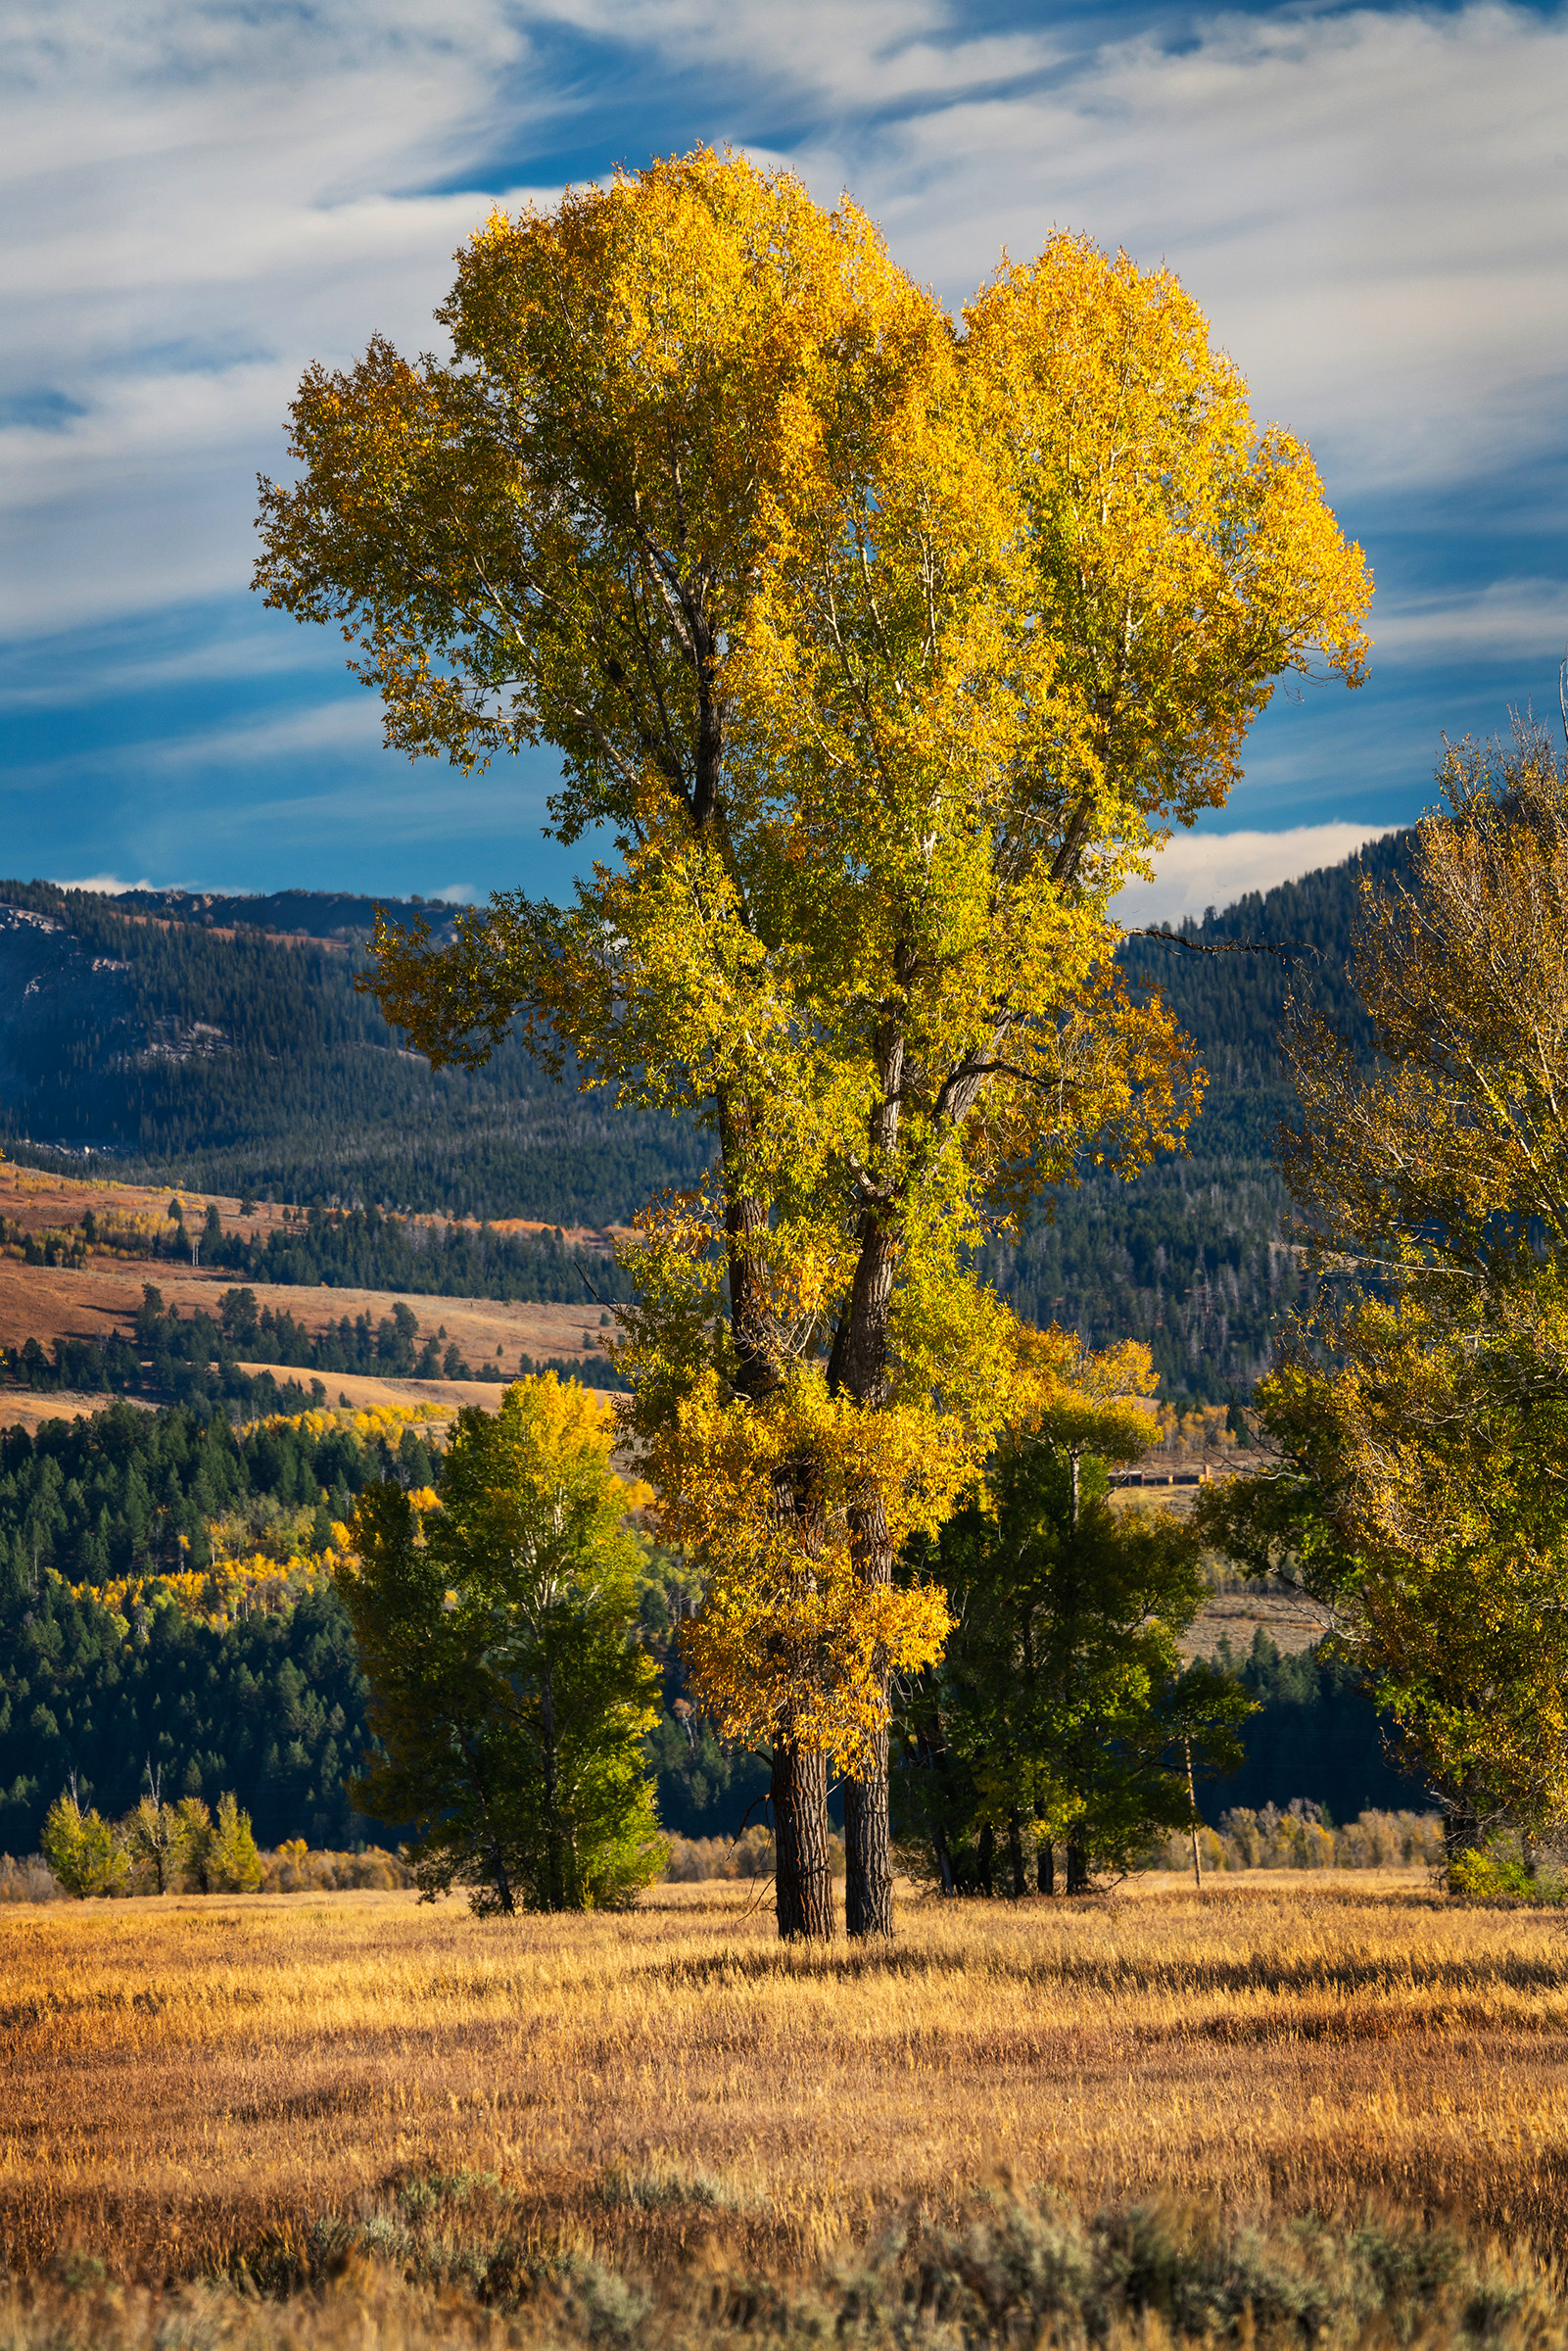 #fallcolor, #grandtetons, #jacksonhole, #trees, #nationalparks, #grandtetonnationalpark, #september, #golden, #yellow, #seasons, #landscape, #photography, #sony